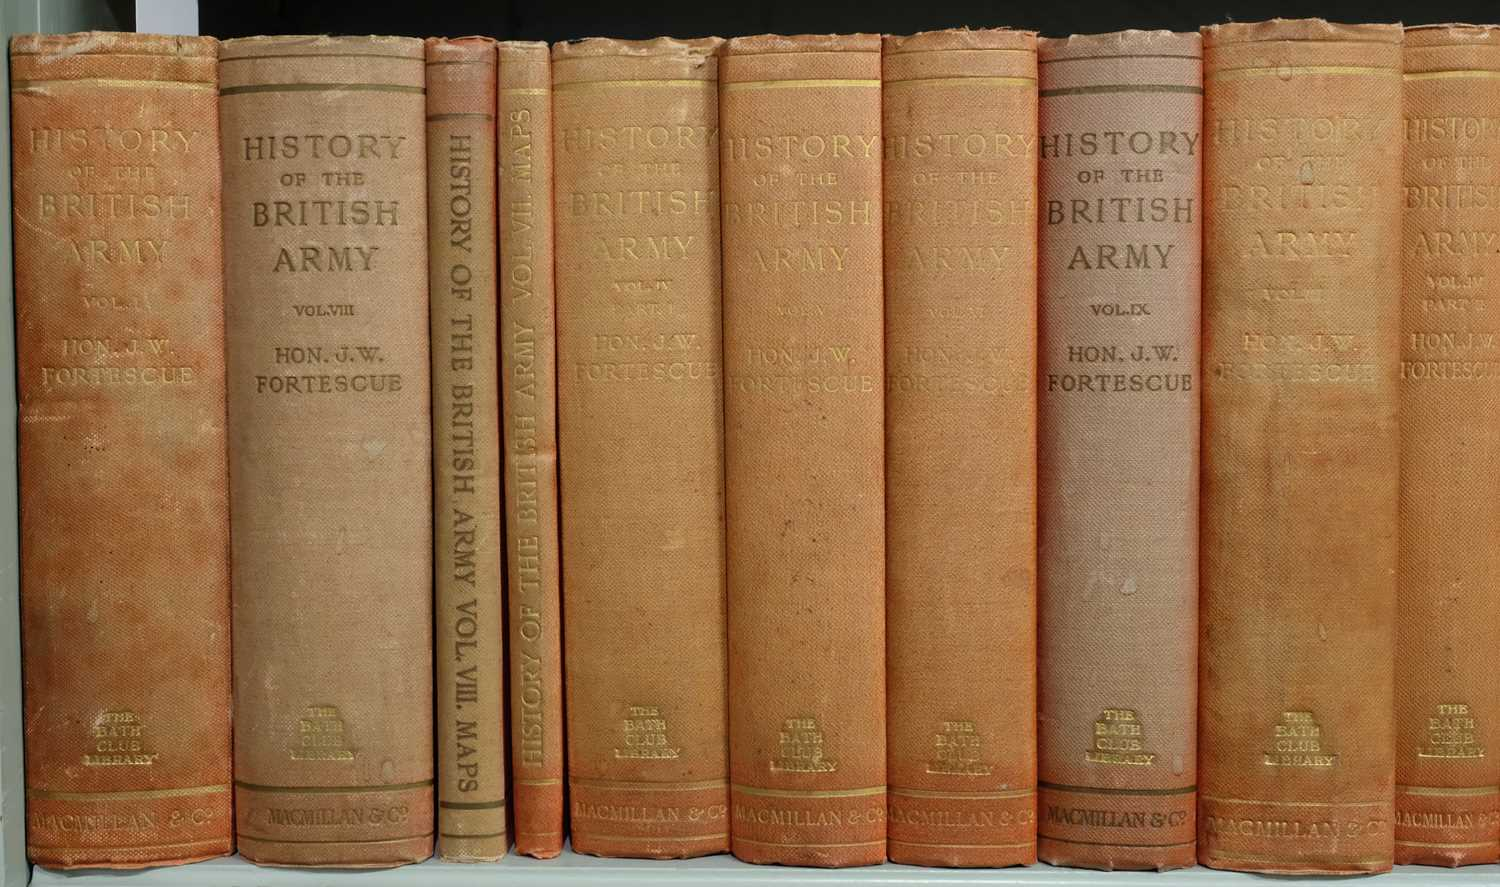 Lot 29 - Fortescue (J.W.). A History of the British Army, 13 vols. in 14, & 6 map vols., 1899-1930